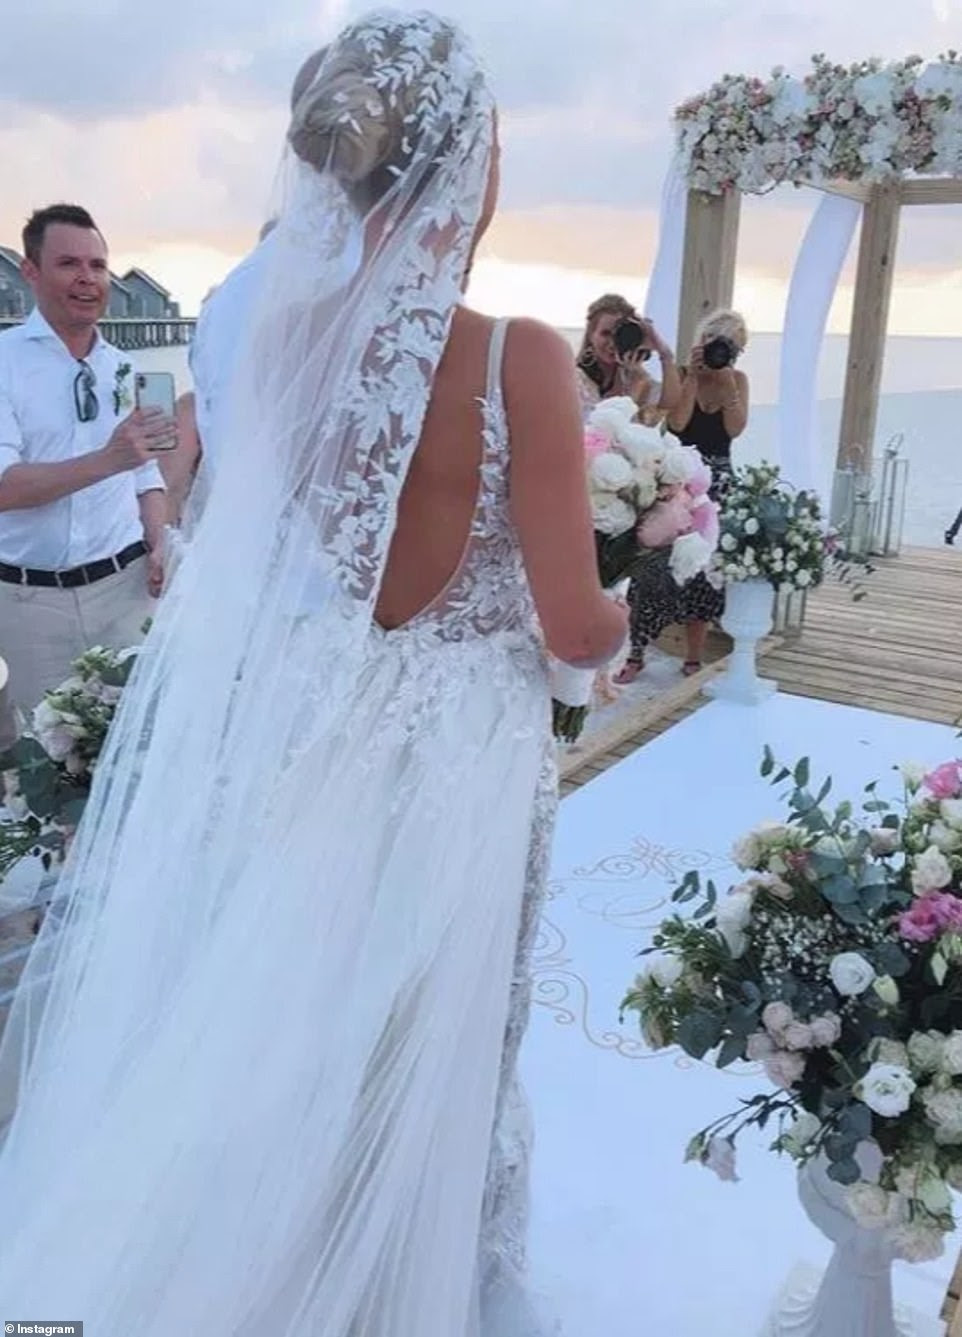 Incredible: Another snap showed Billie's beautiful white lace wedding gown as she made her way down the aisle